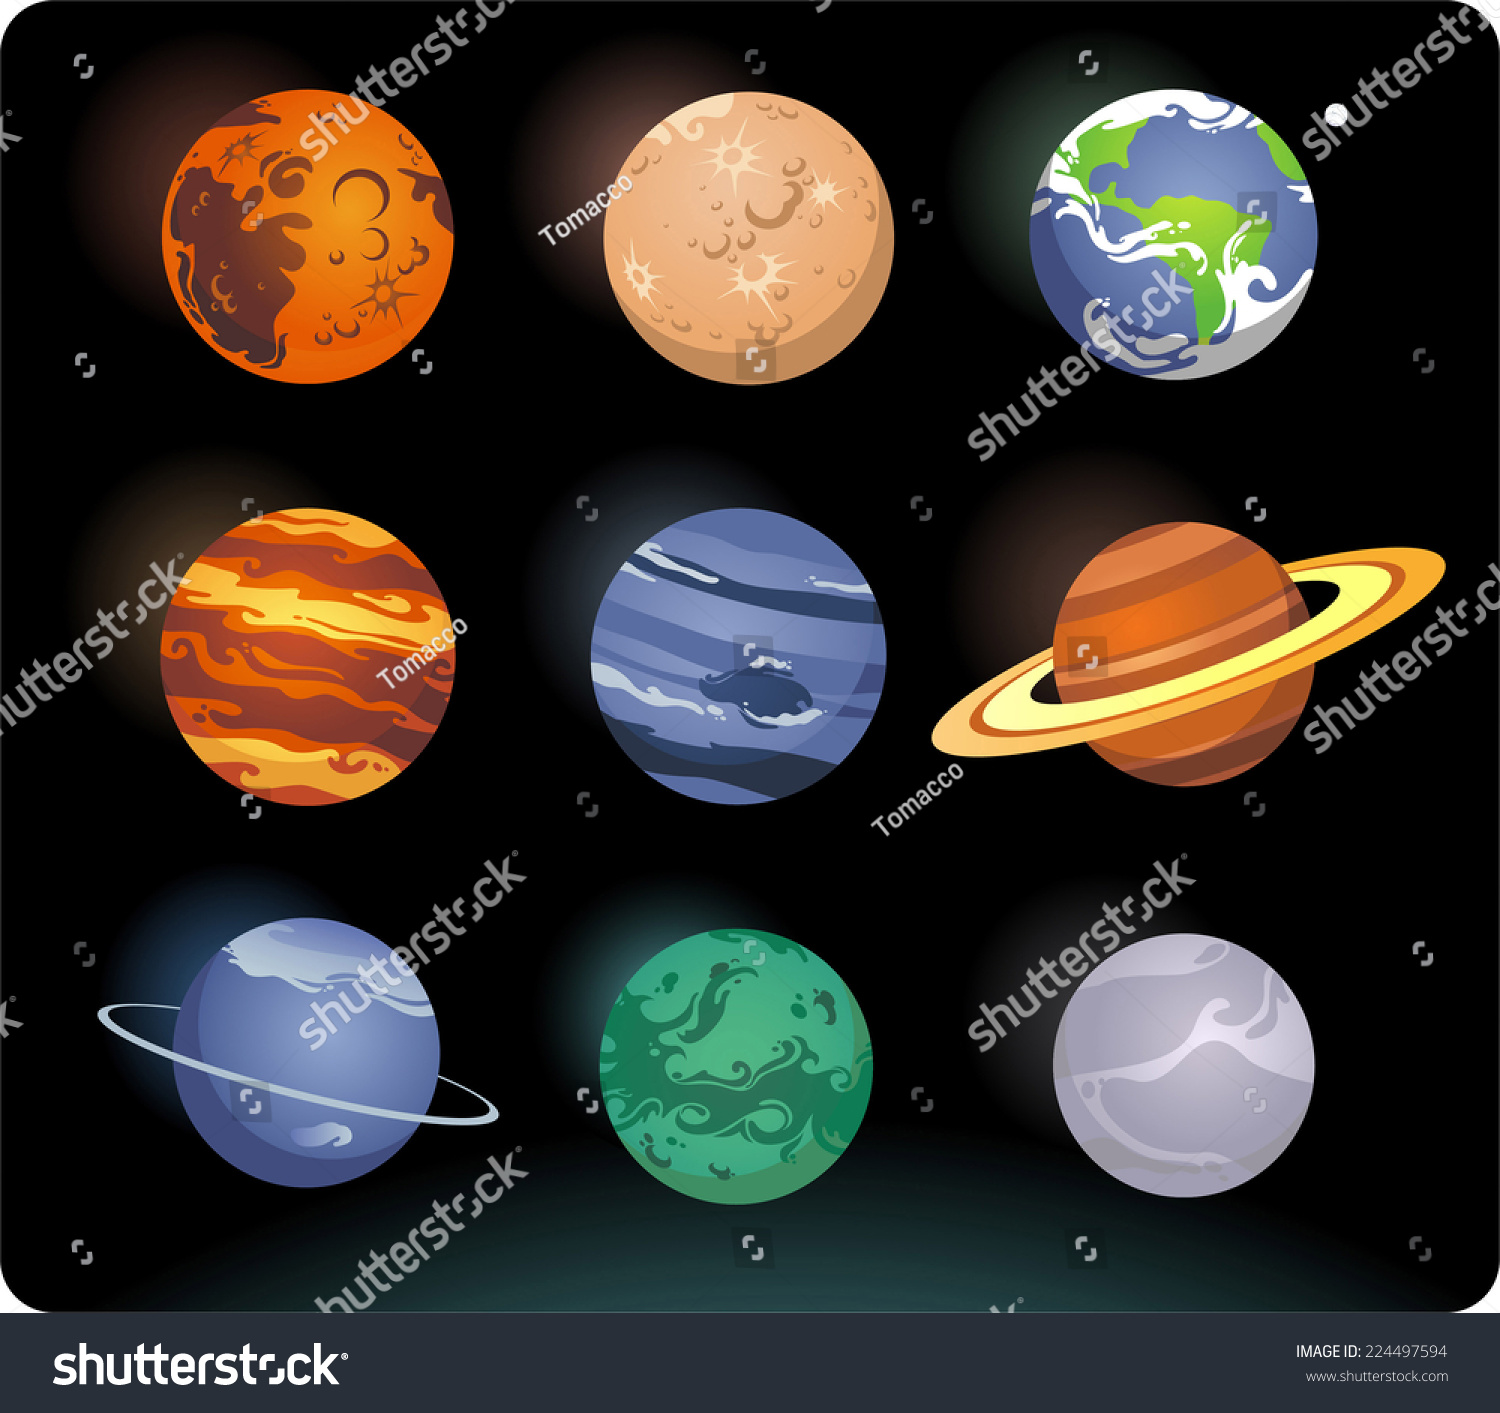 funny planets in alignment - photo #10